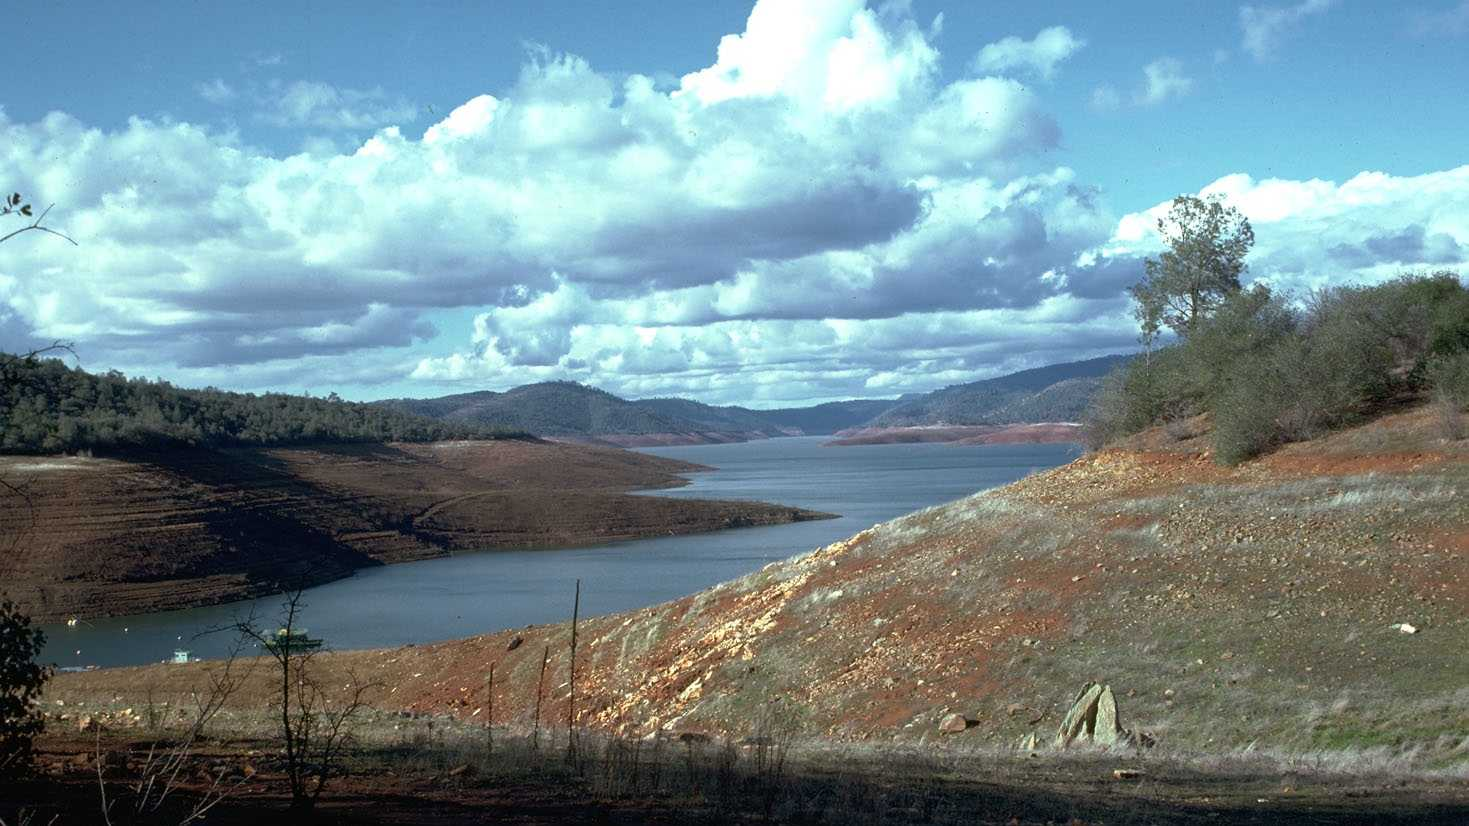 1976-77 drought Lake Shasta